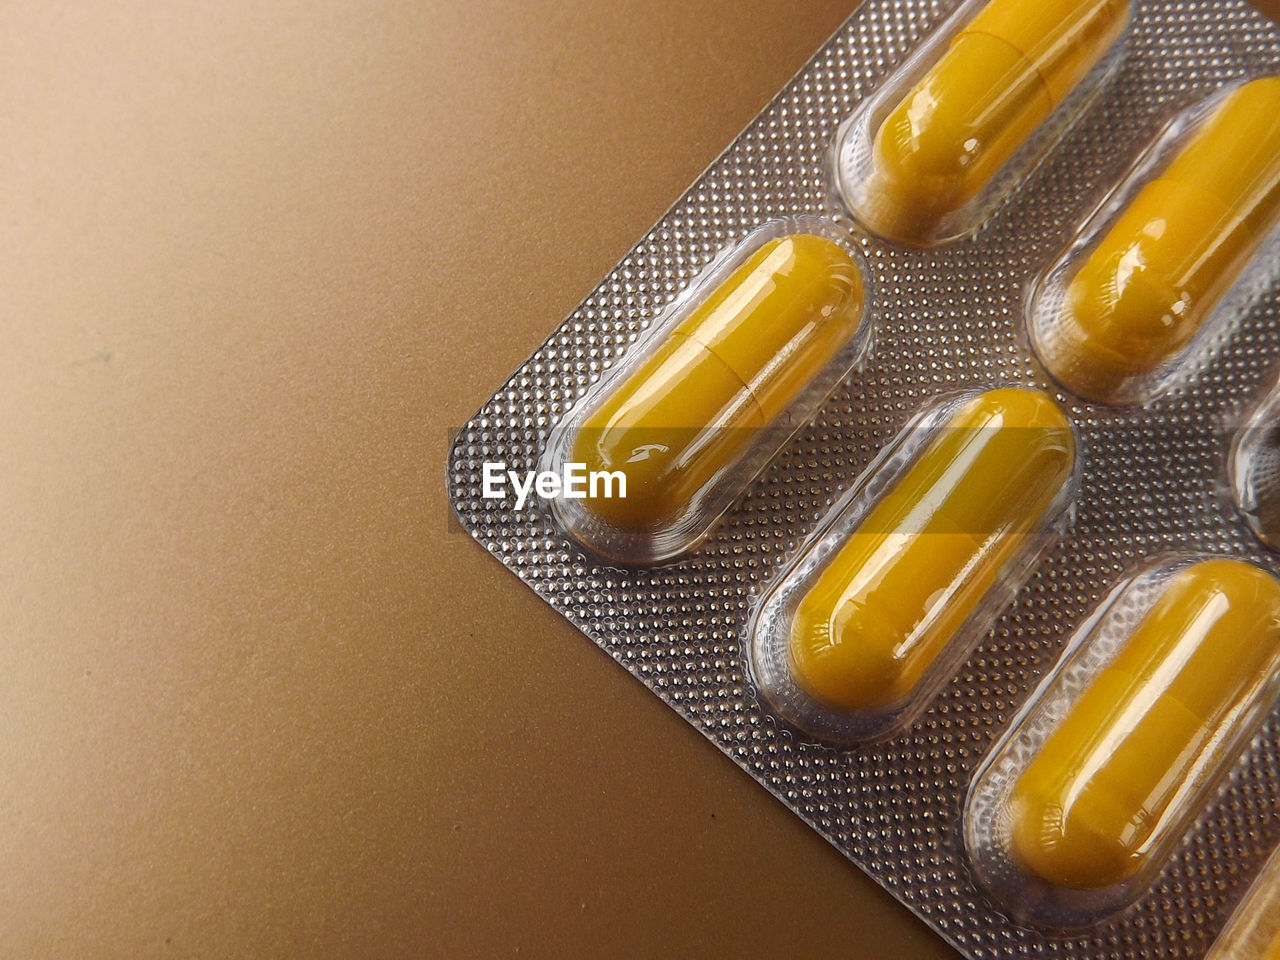 healthcare and medicine, pill, medicine, capsule, nutritional supplement, prescription medicine, indoors, blister pack, vitamin, close-up, no people, yellow, dose, antibiotic, day